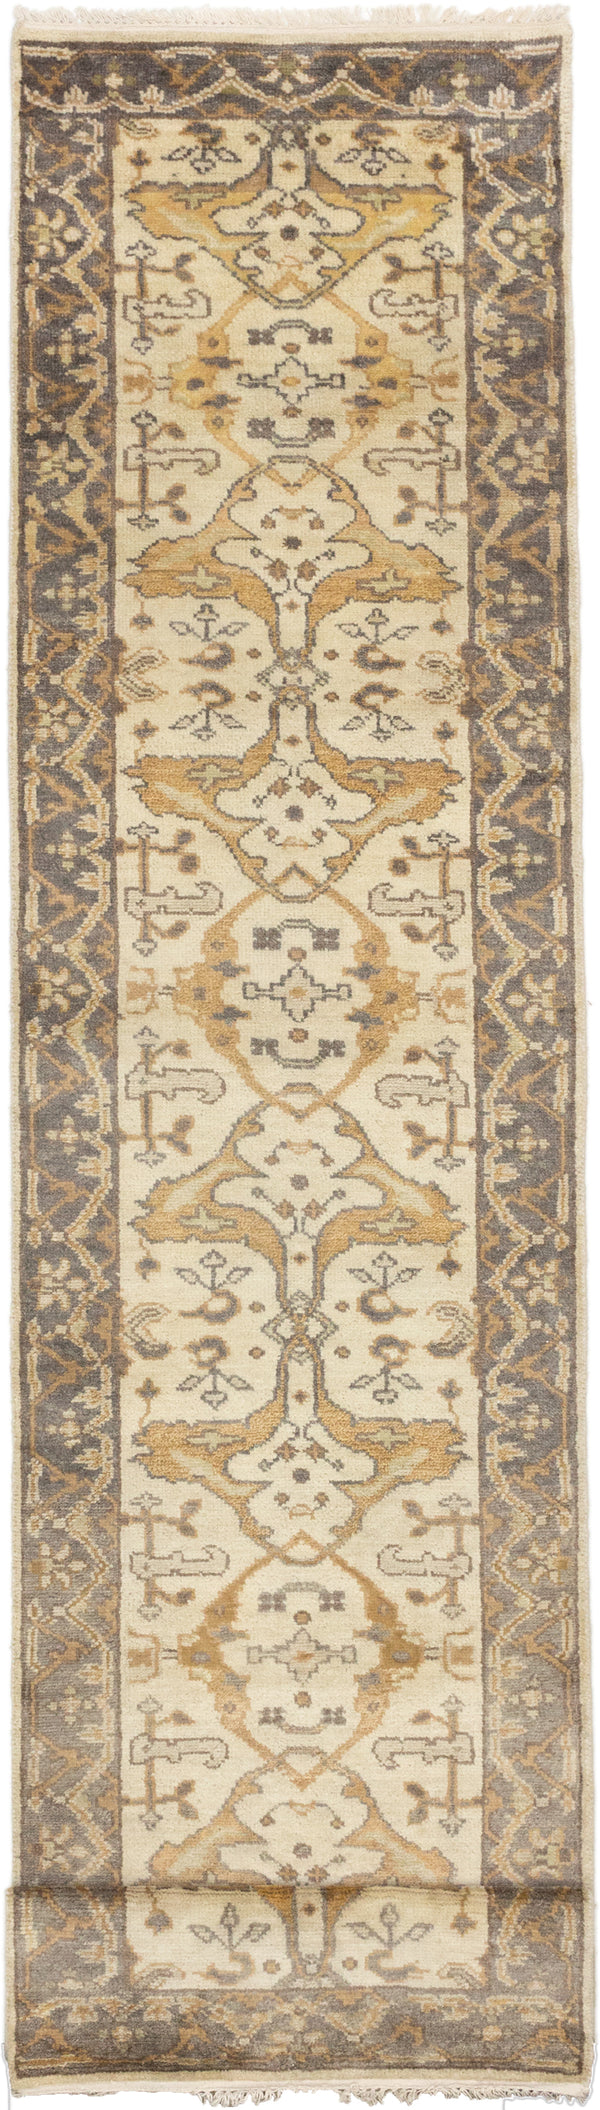 Hand-knotted Indian Floral  Traditional Royal-Ushak Runner rug  Cream 2.1 x 19.1